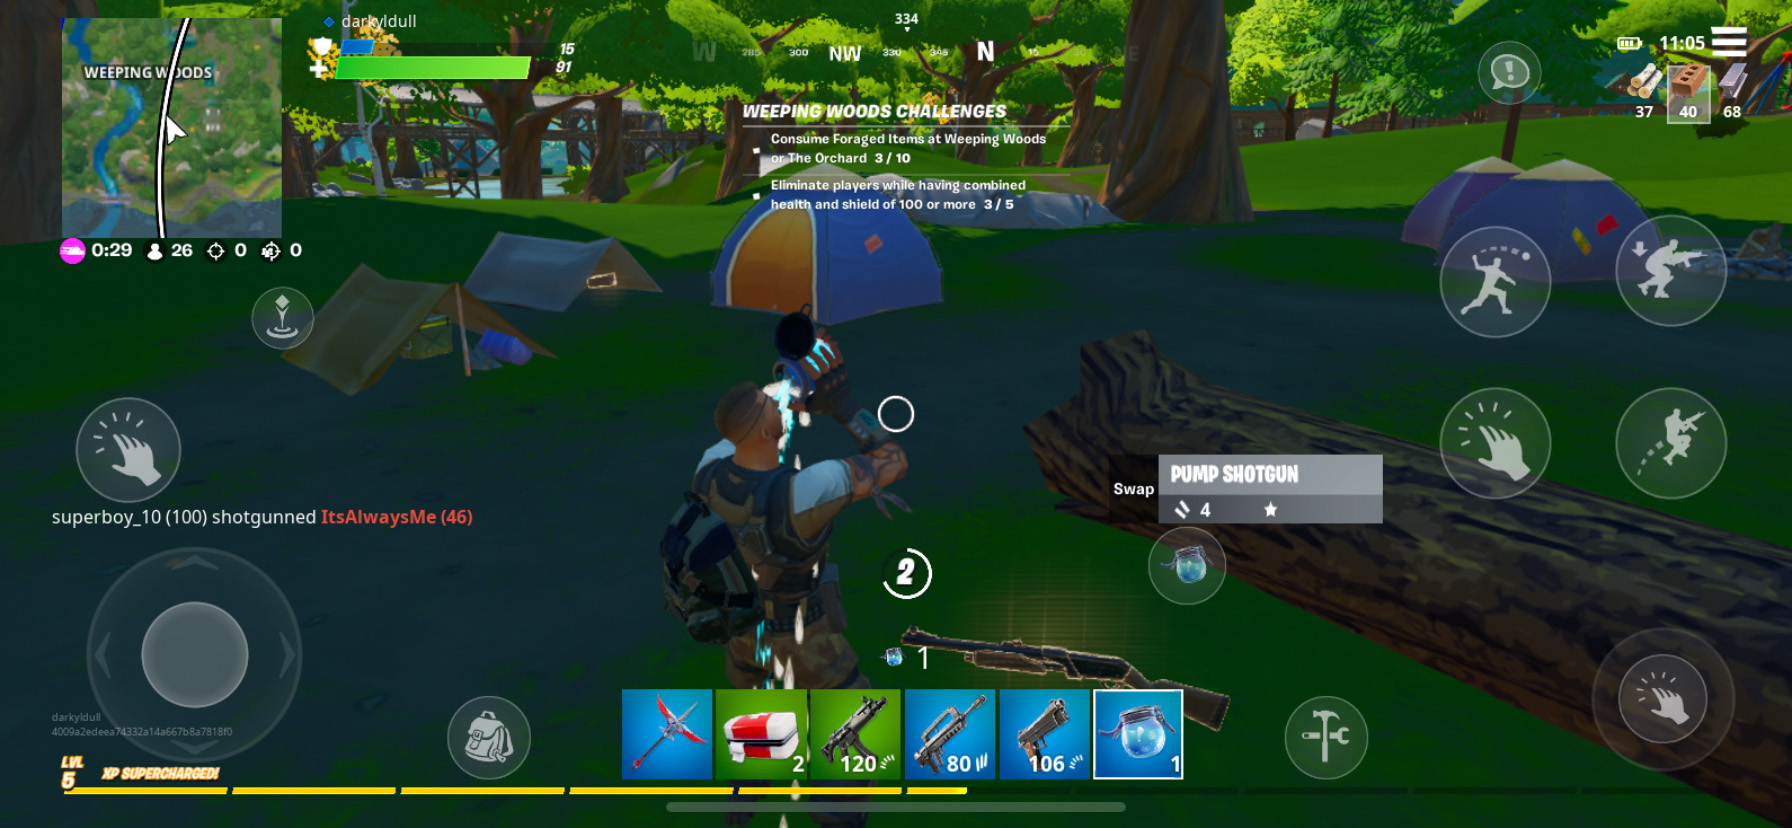 Fortnite Mobile for Android - How to Score the Best Loot and Gear Up